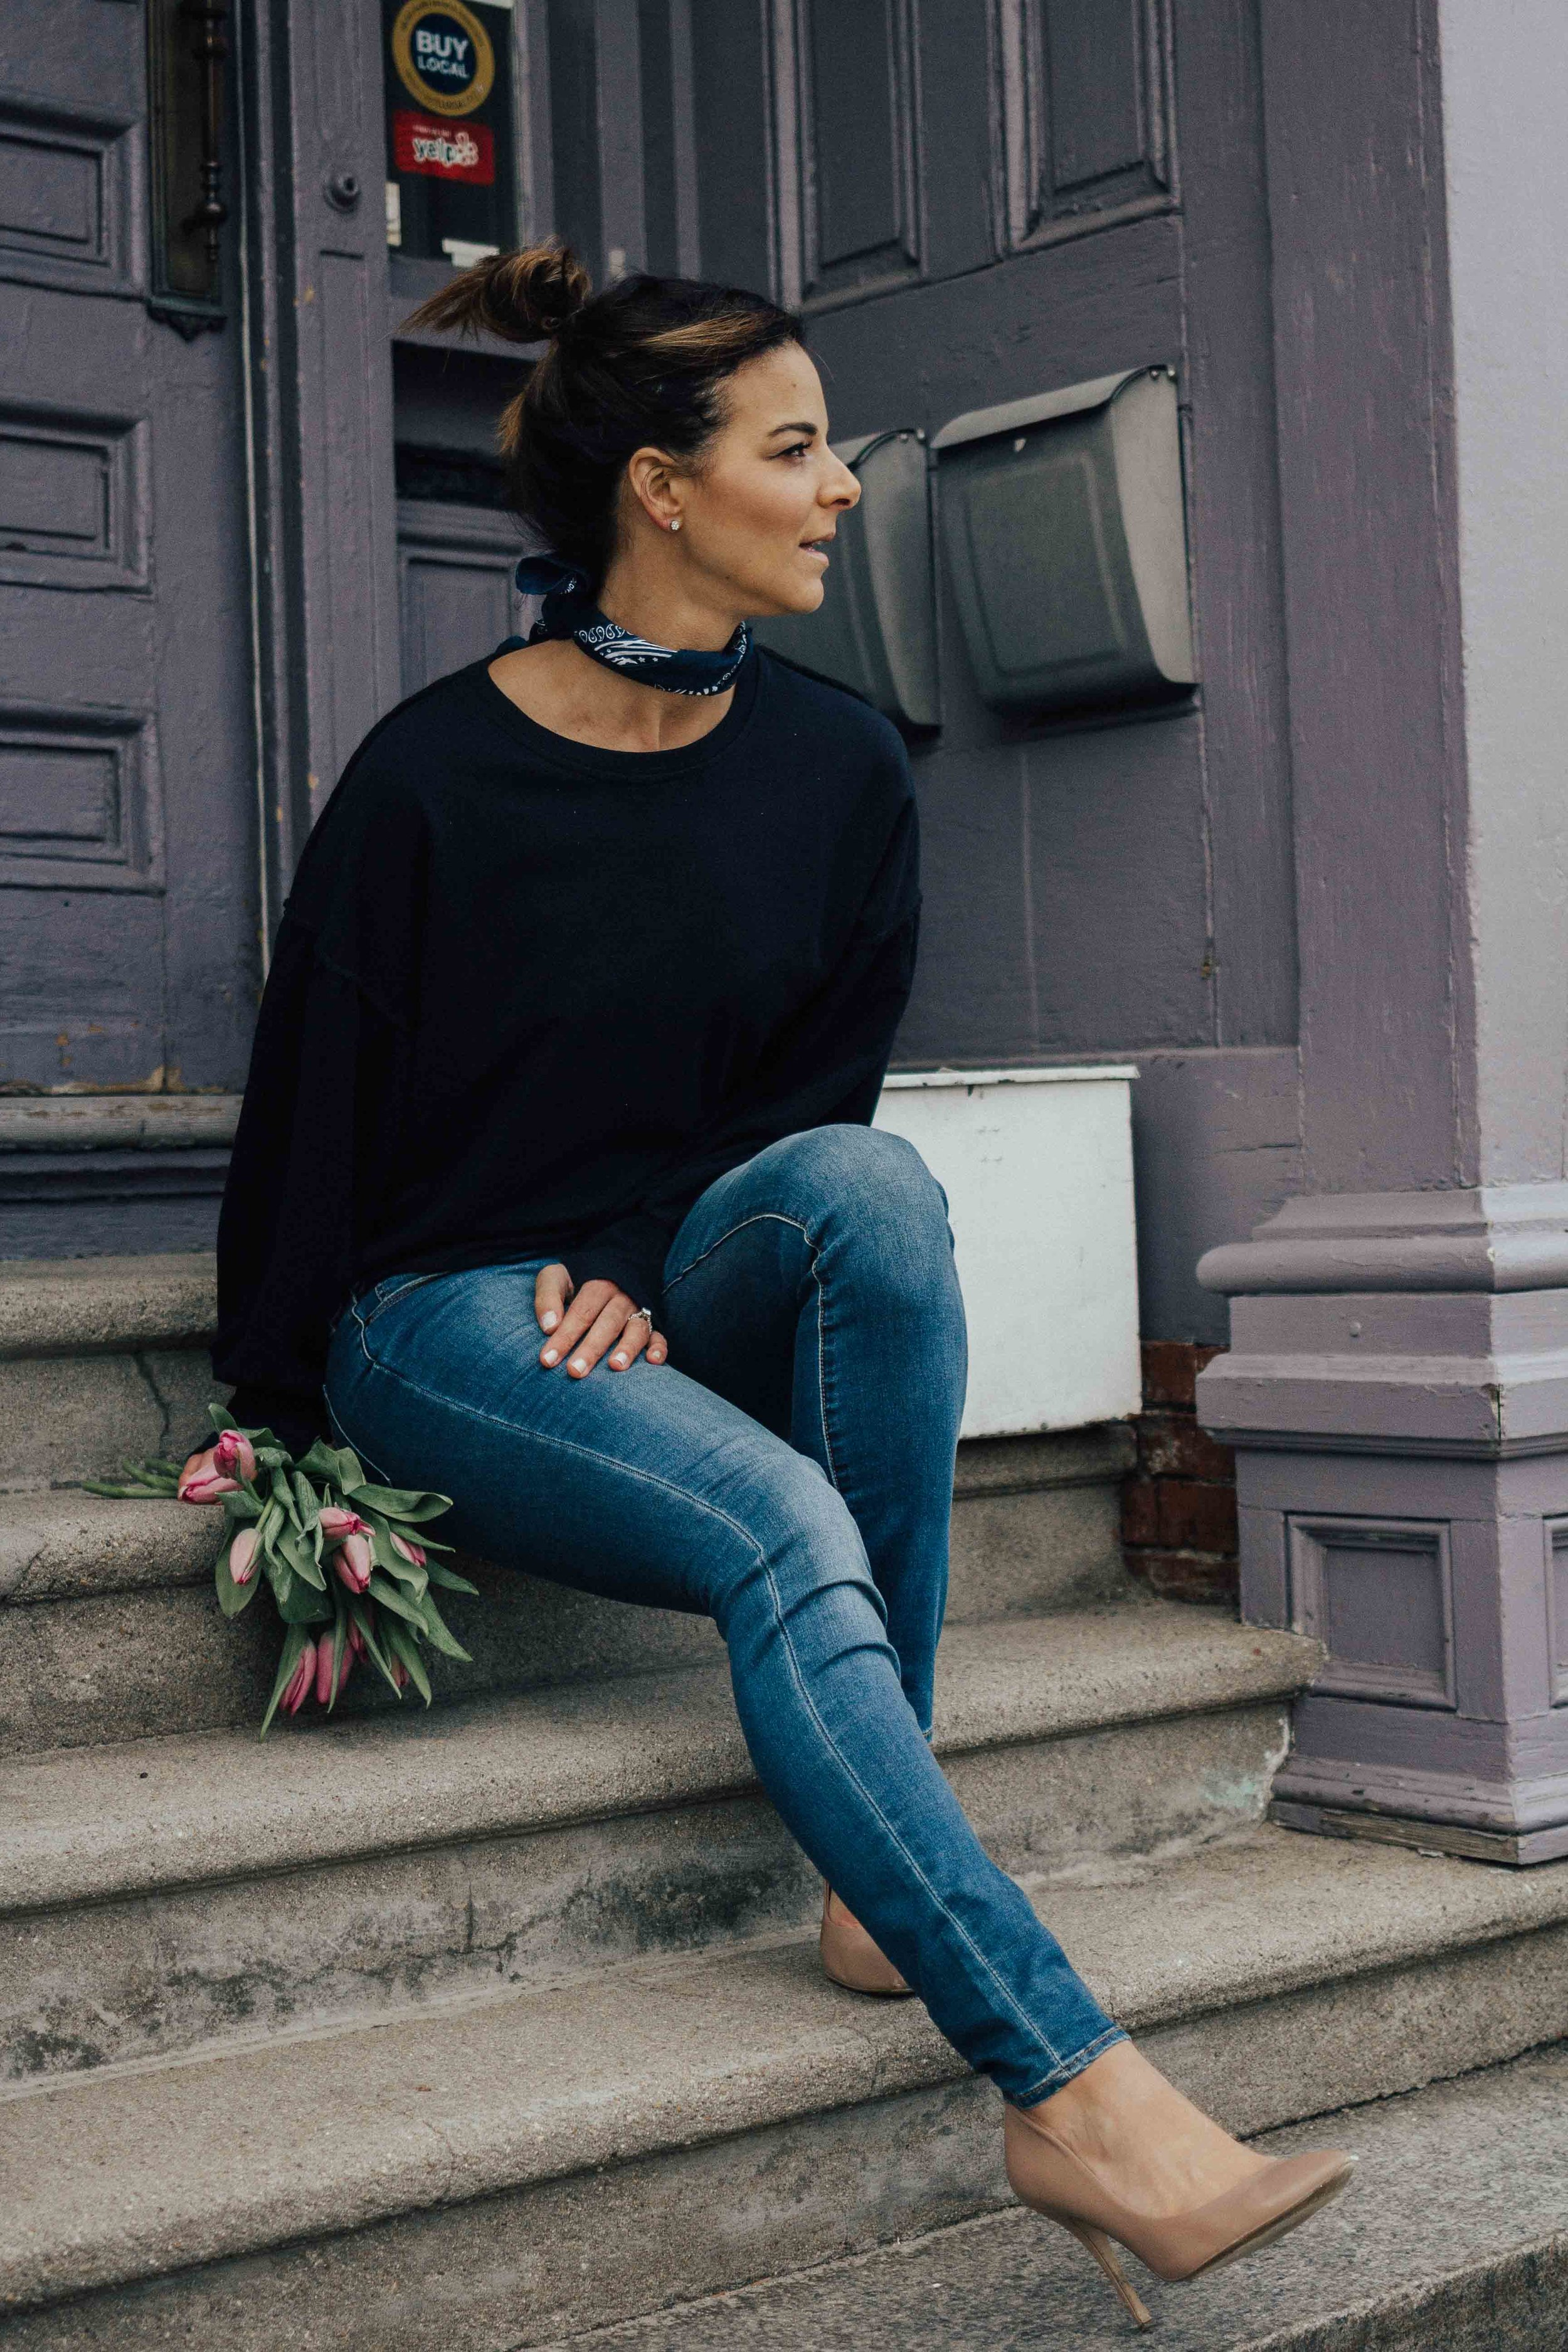 Simple Tips for Staying Positive - CasualSimple Tips for Staying Positive - Casual Friday Outfits – Weekend Outfits - Fashion for Women – heartandseam.com  - #heartandseam #casualoutfits #positivity #staypositive